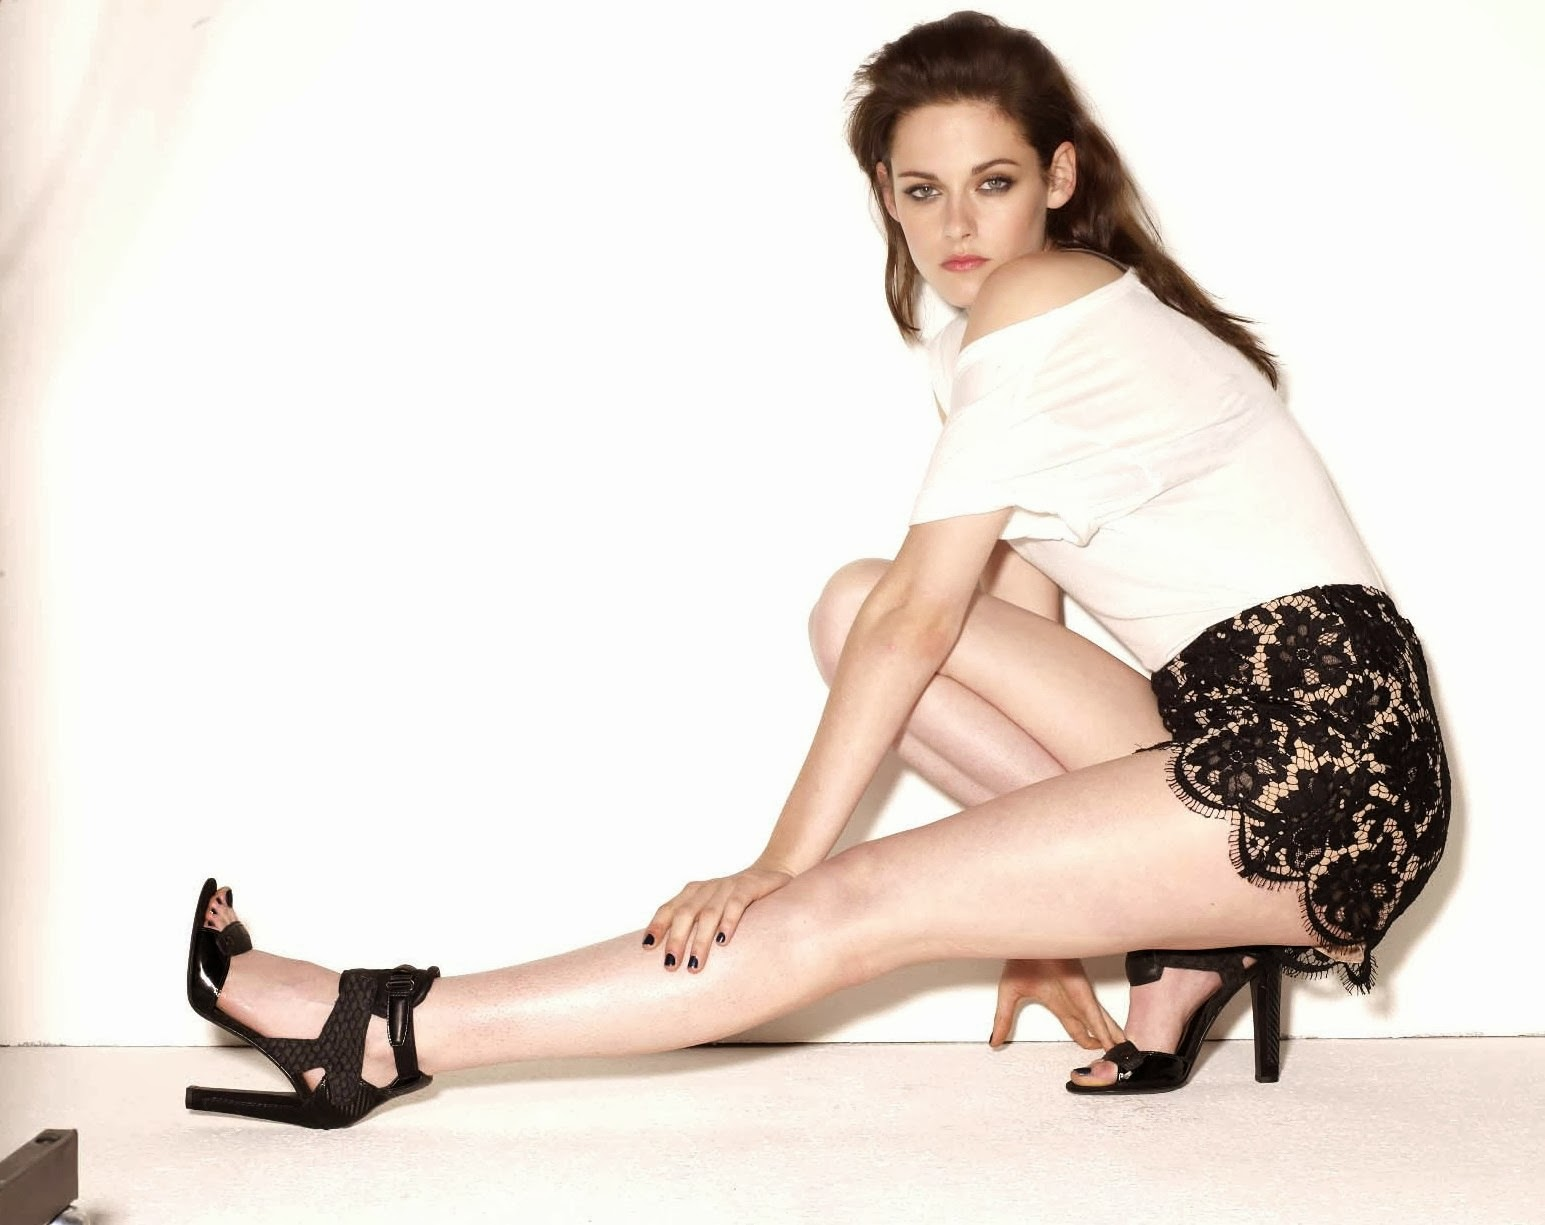 New 3d Wallpapers Free Download For Mobile Kristen Stewart Hd Photos Wallpapers Free Download